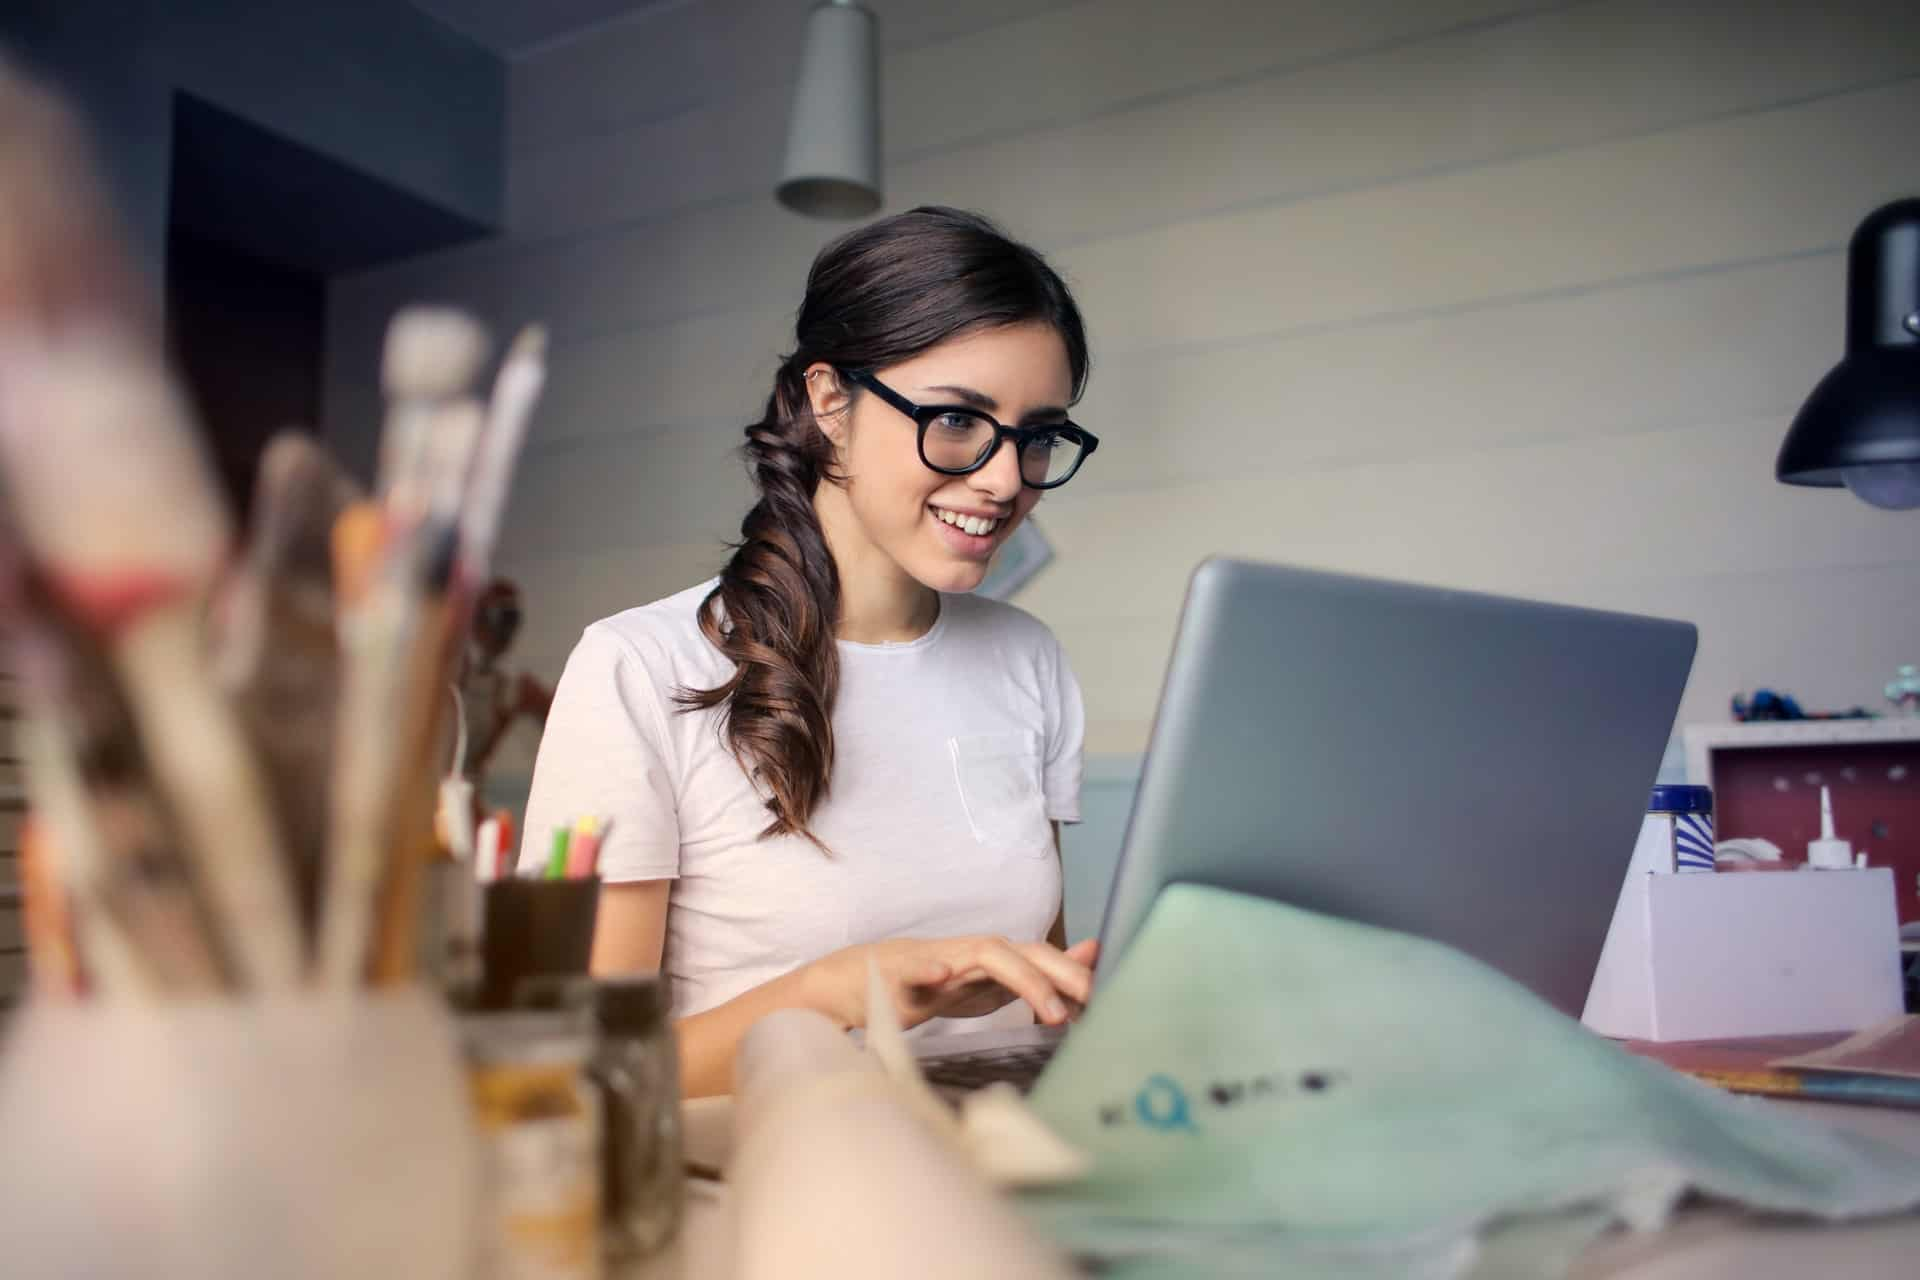 Young Woman in glasses on laptop smiling